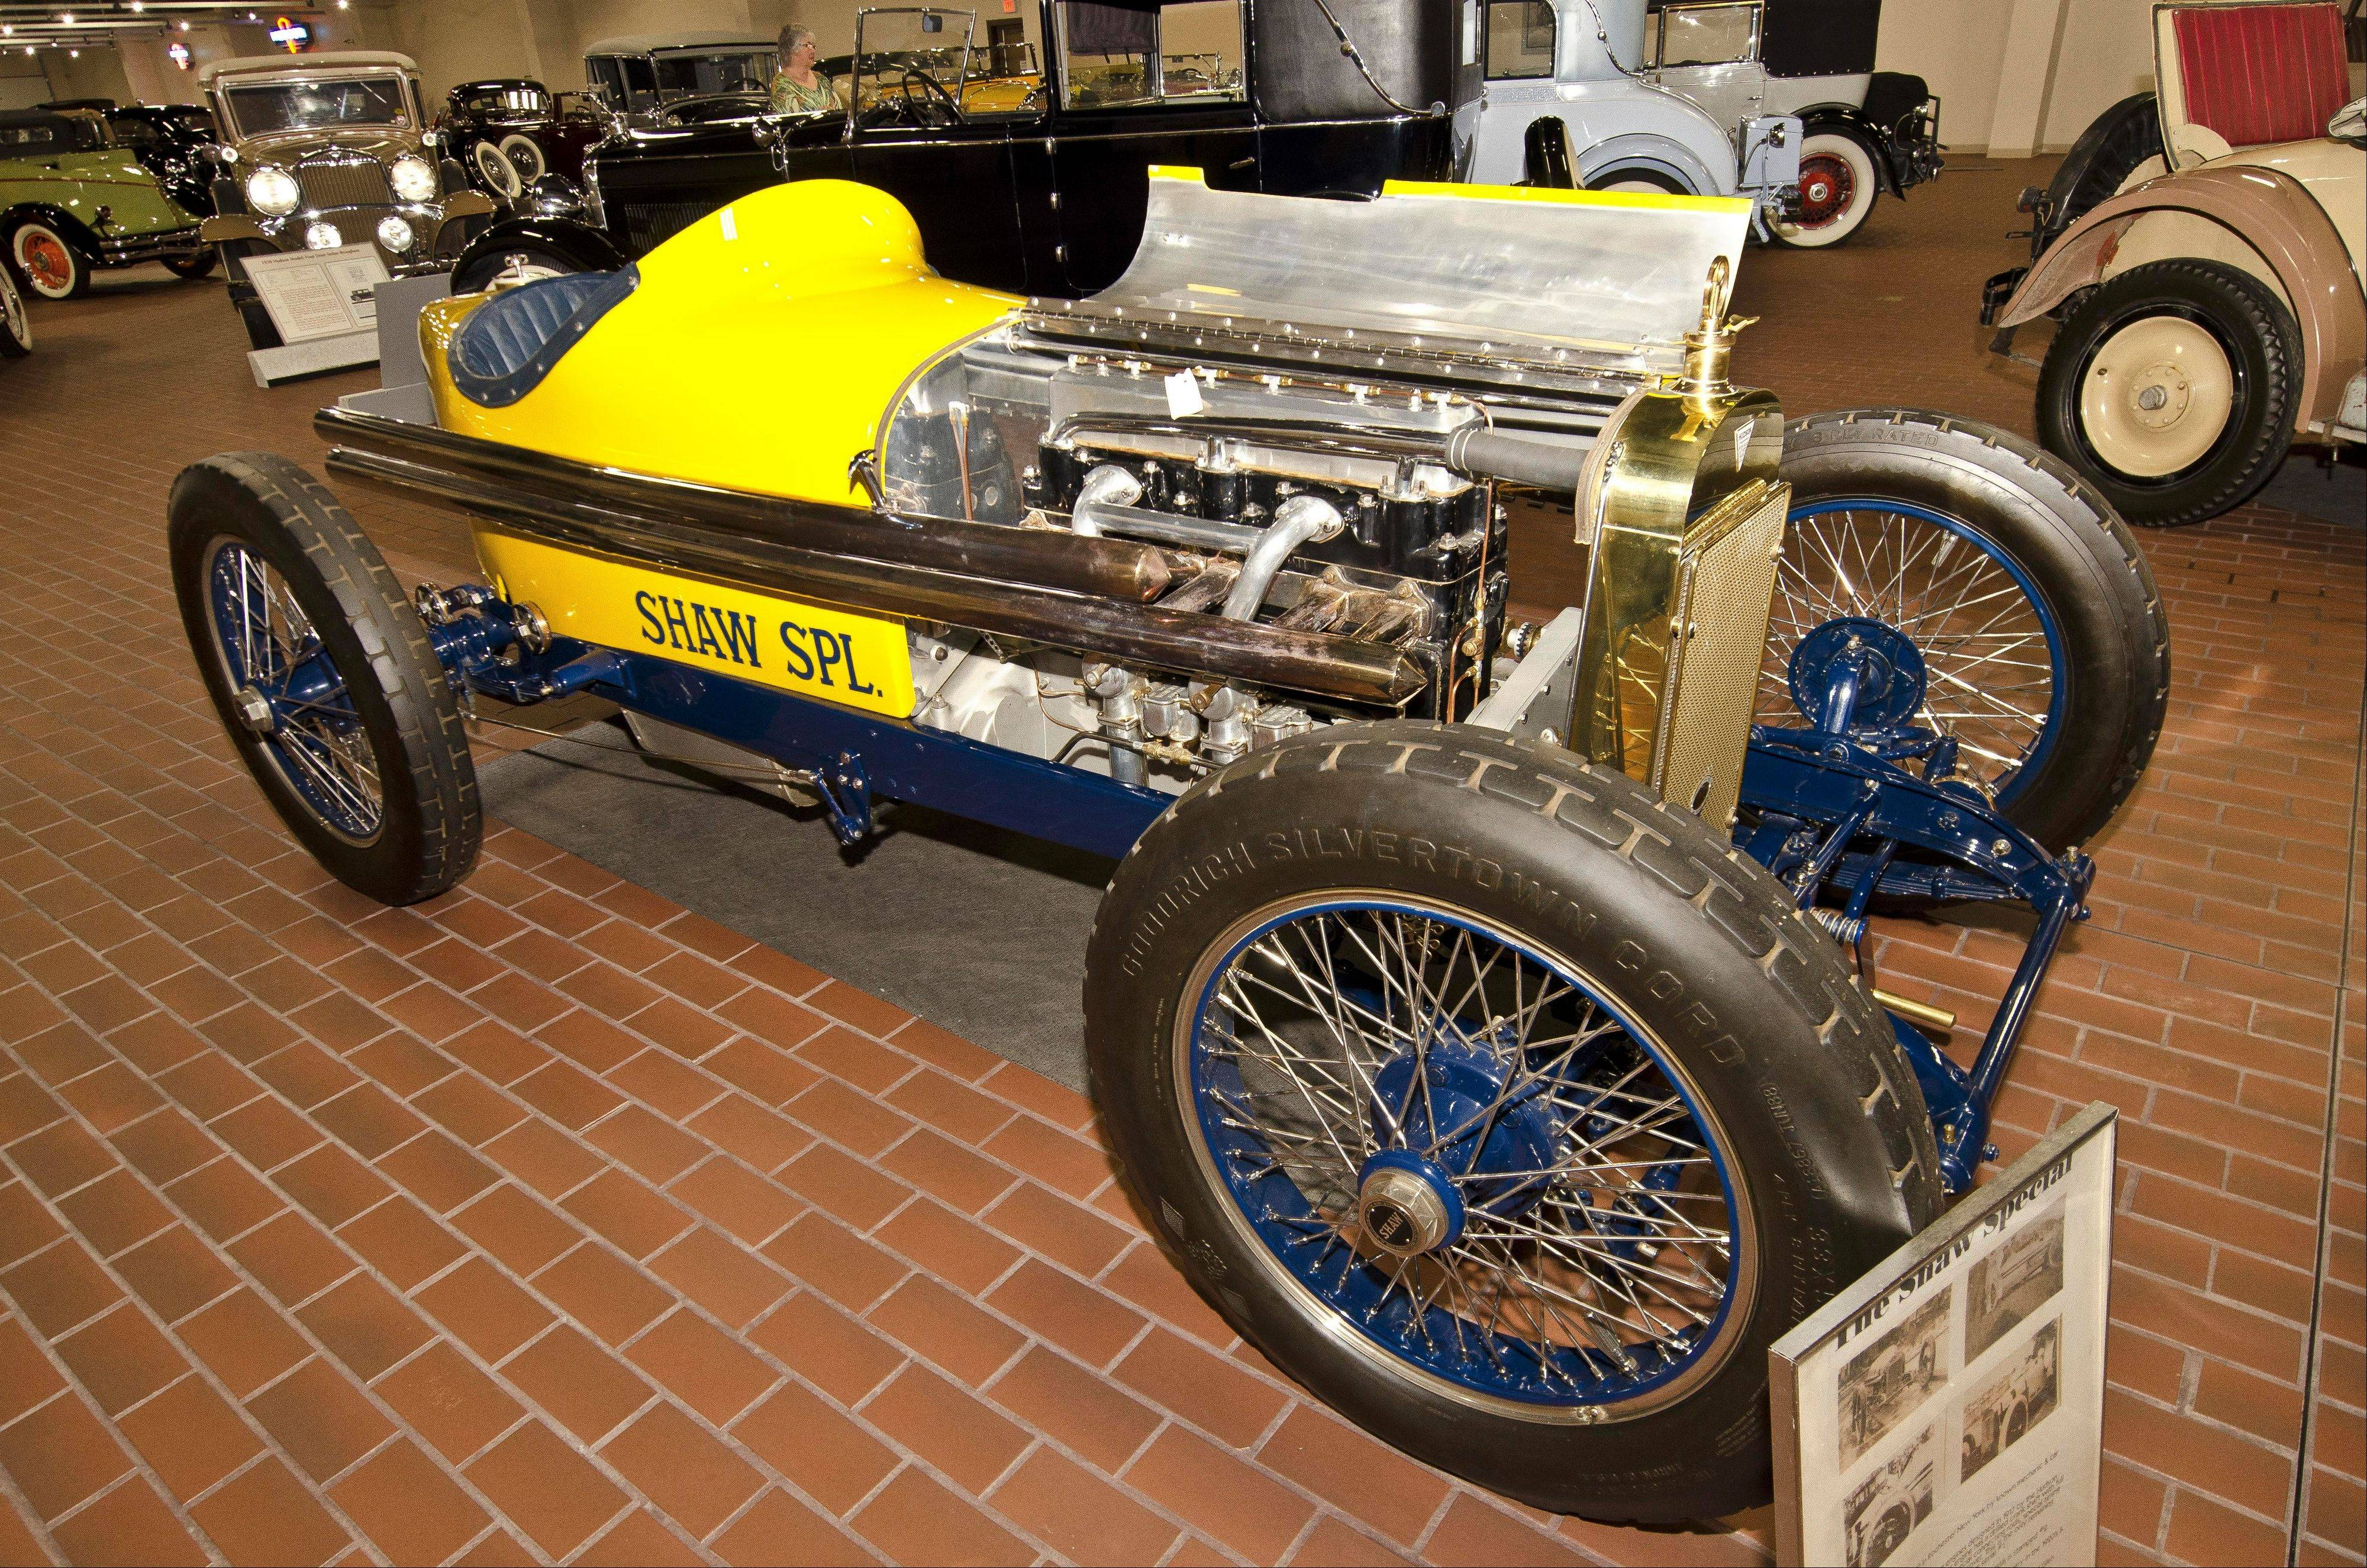 The collection includes this Shaw race car.